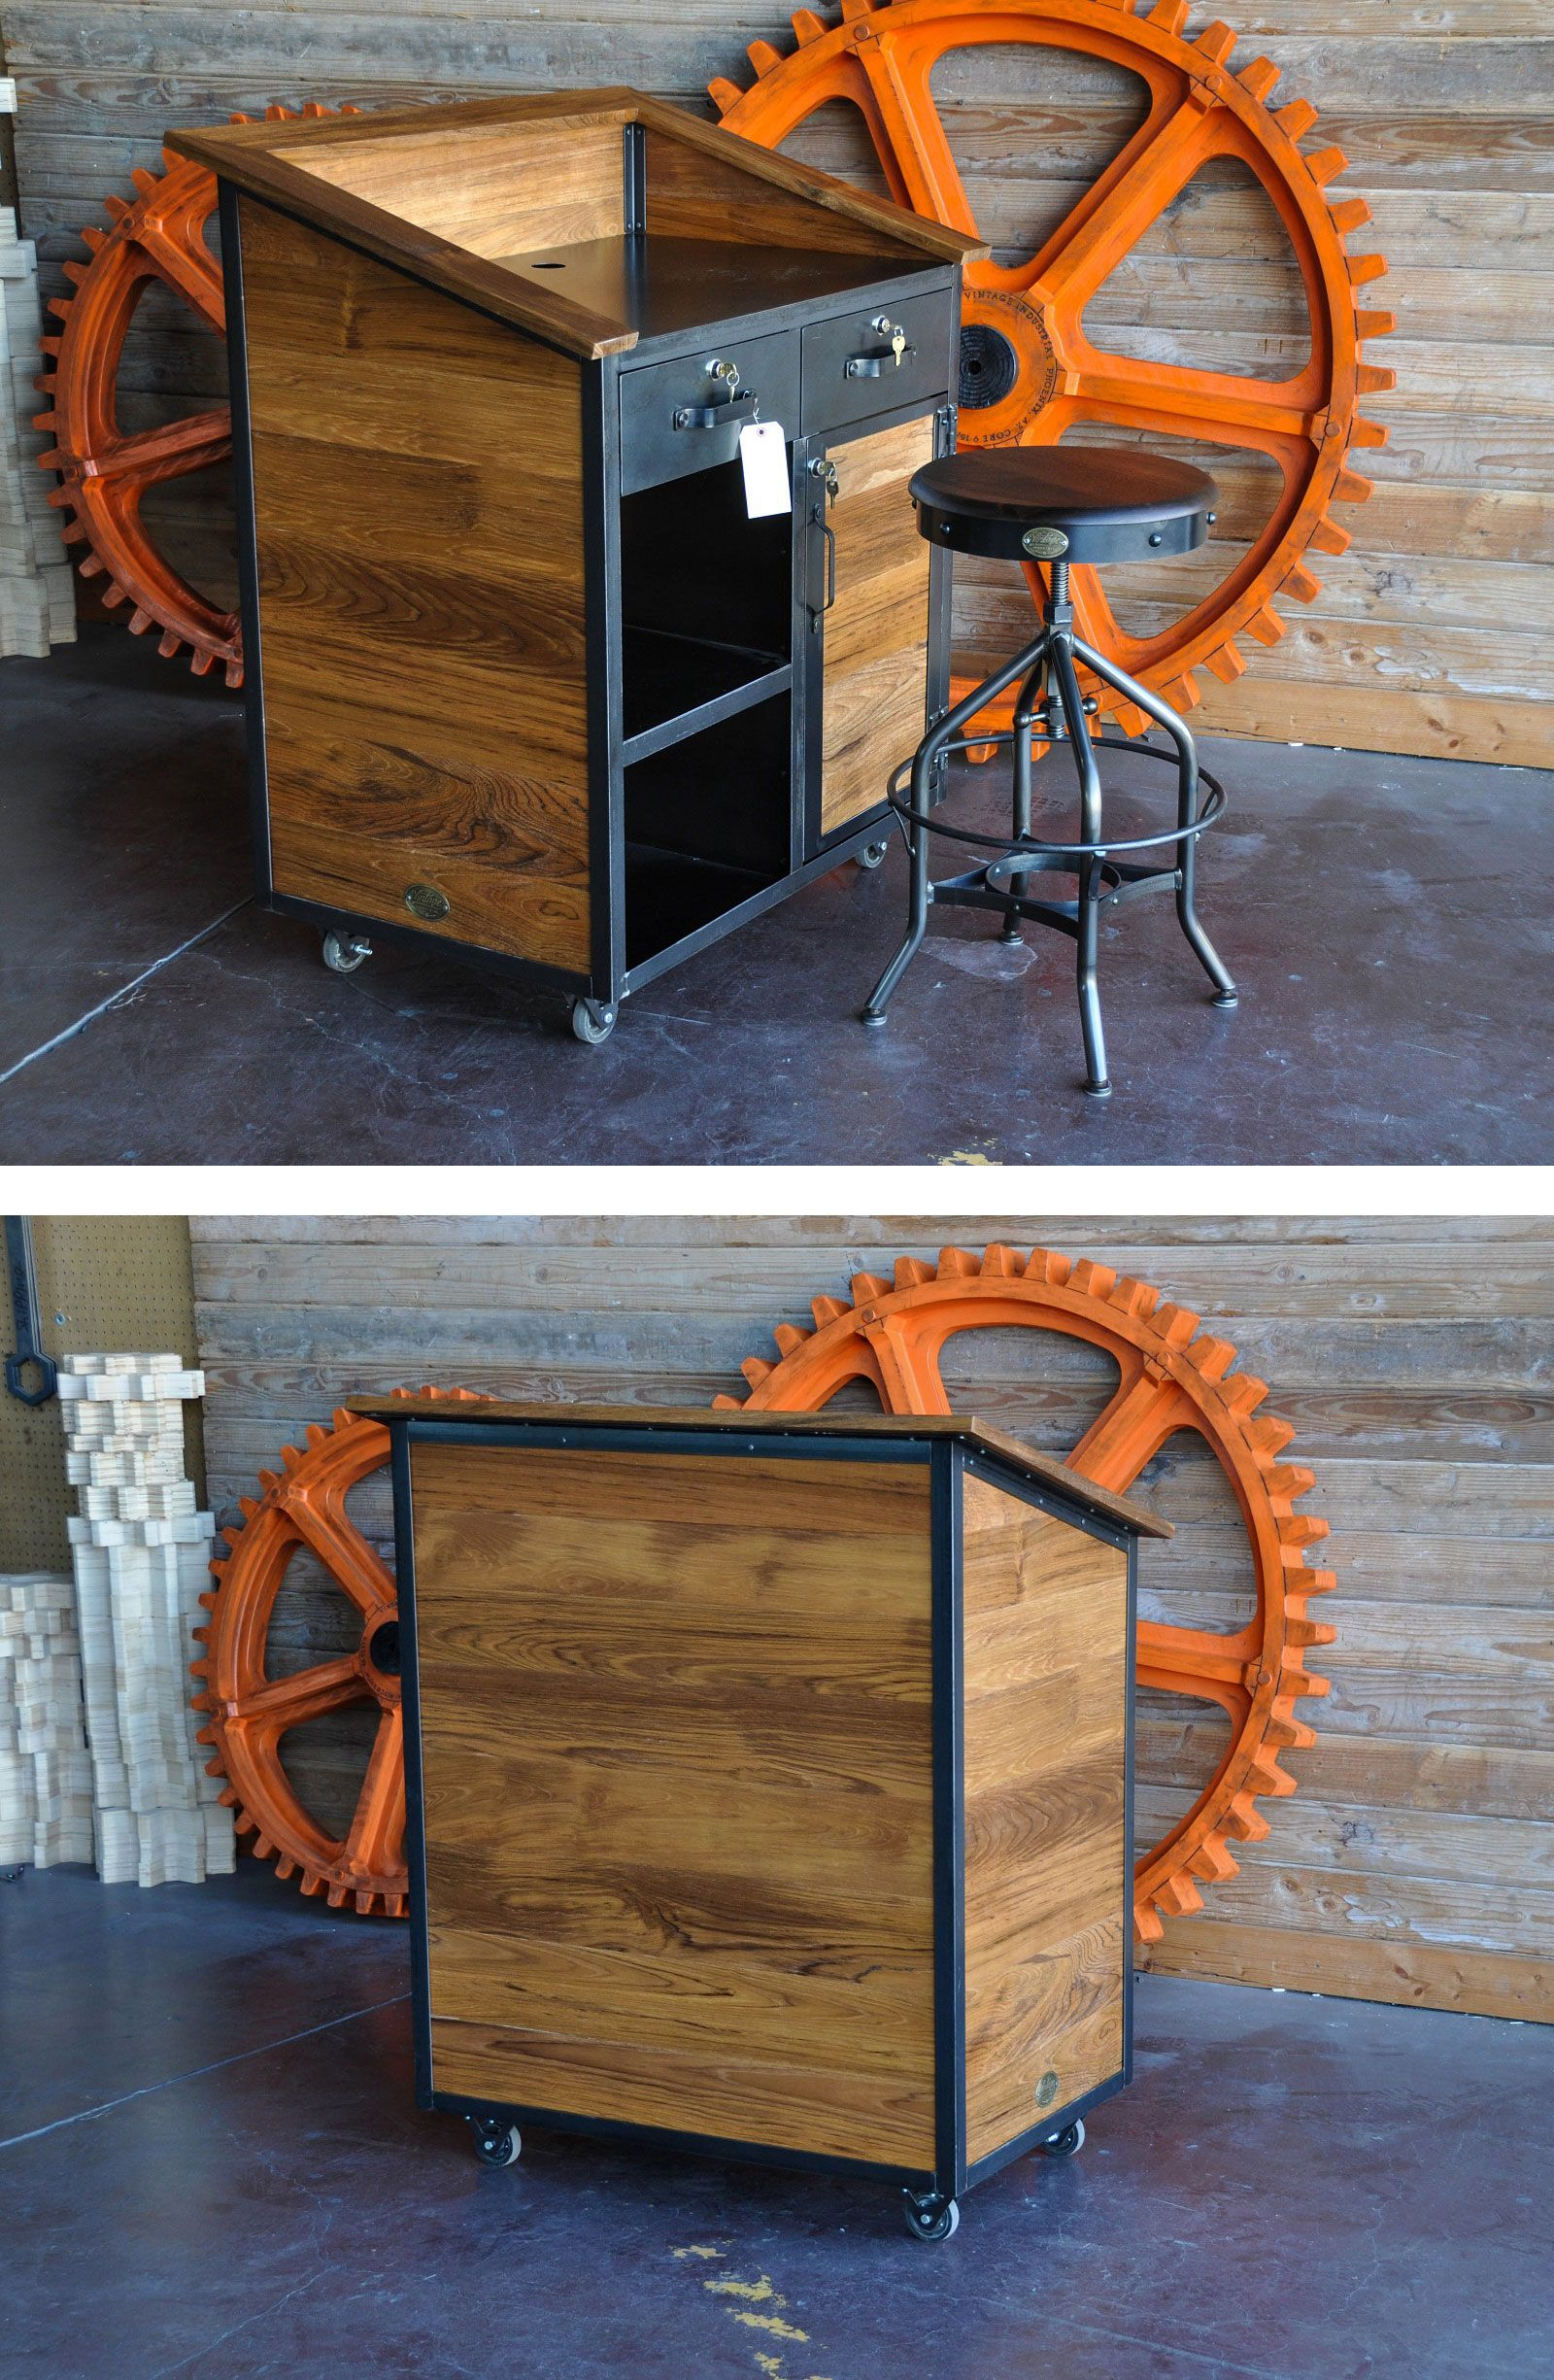 Hilton Hostess Stand by Vintage Industrial Furniture in Phoenix, AZ #vintageindustrialfurniture